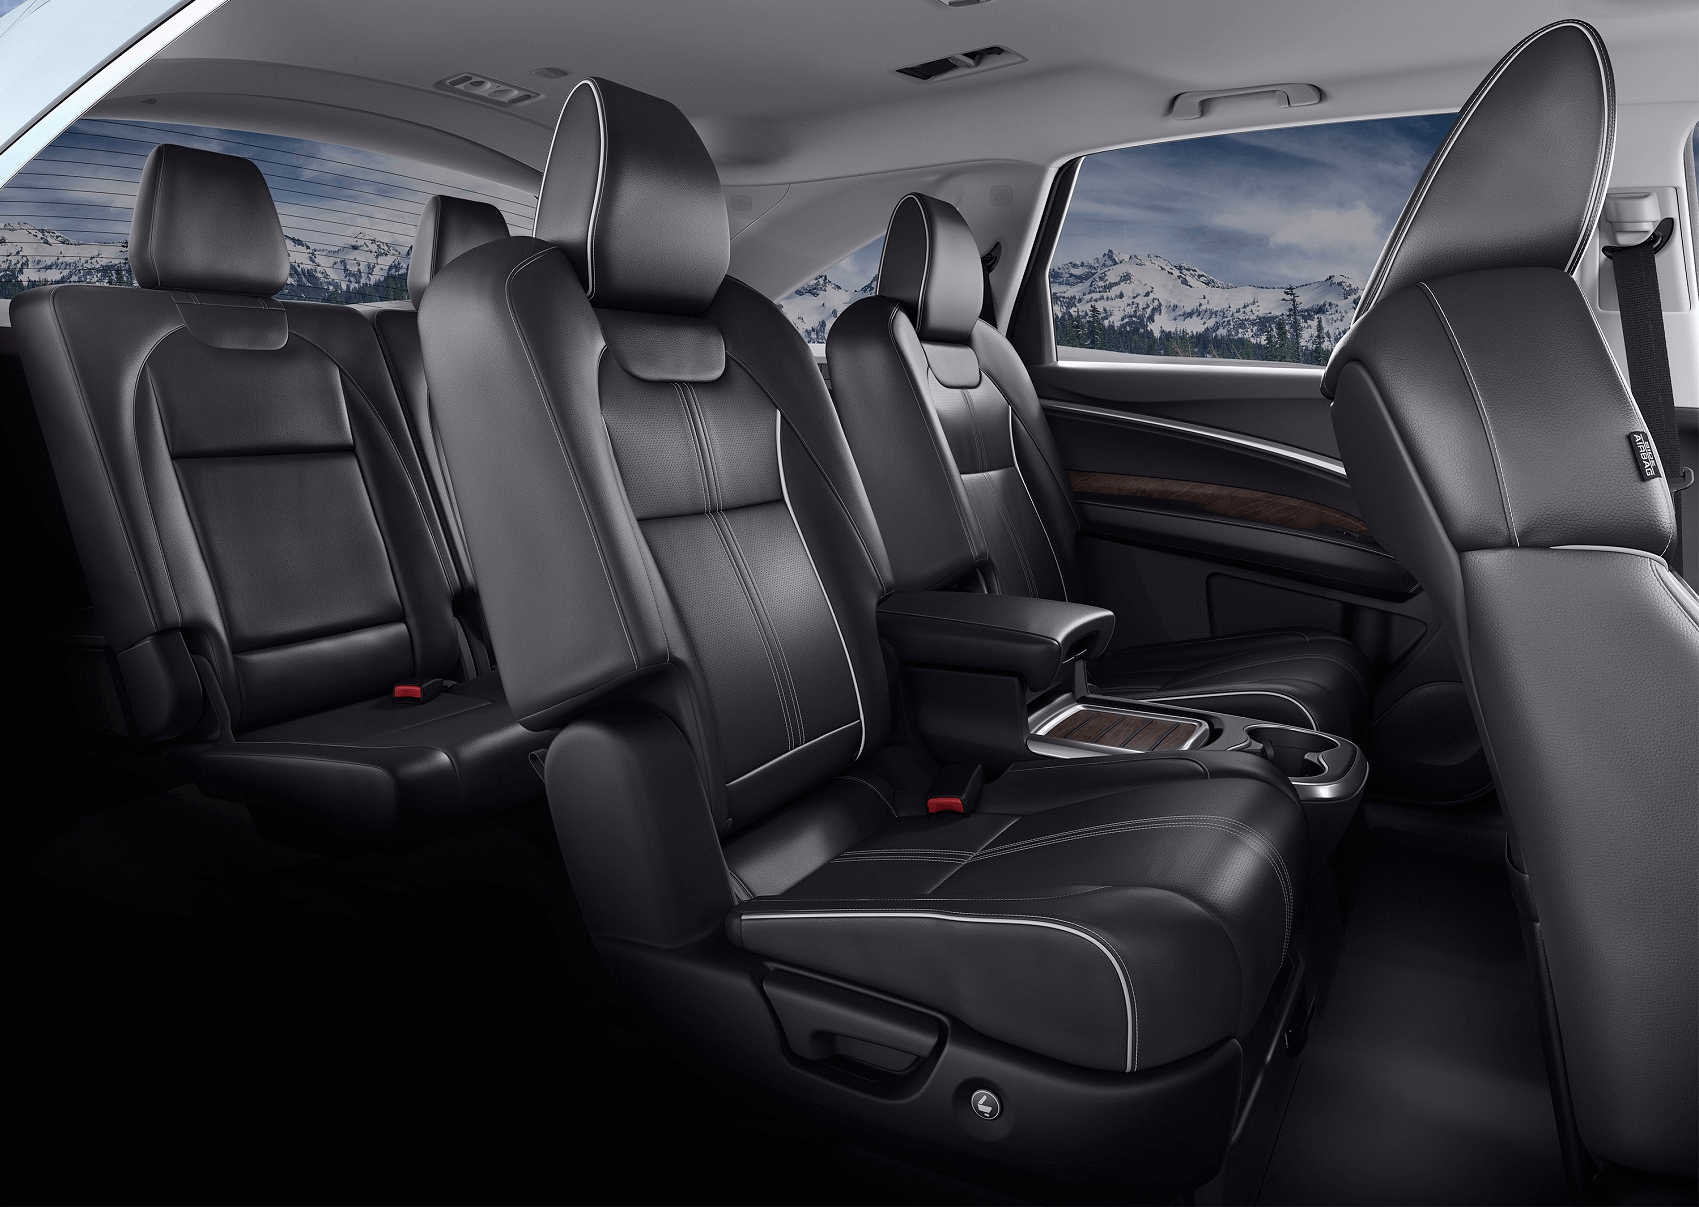 2020 Acura MDX Leather Seats